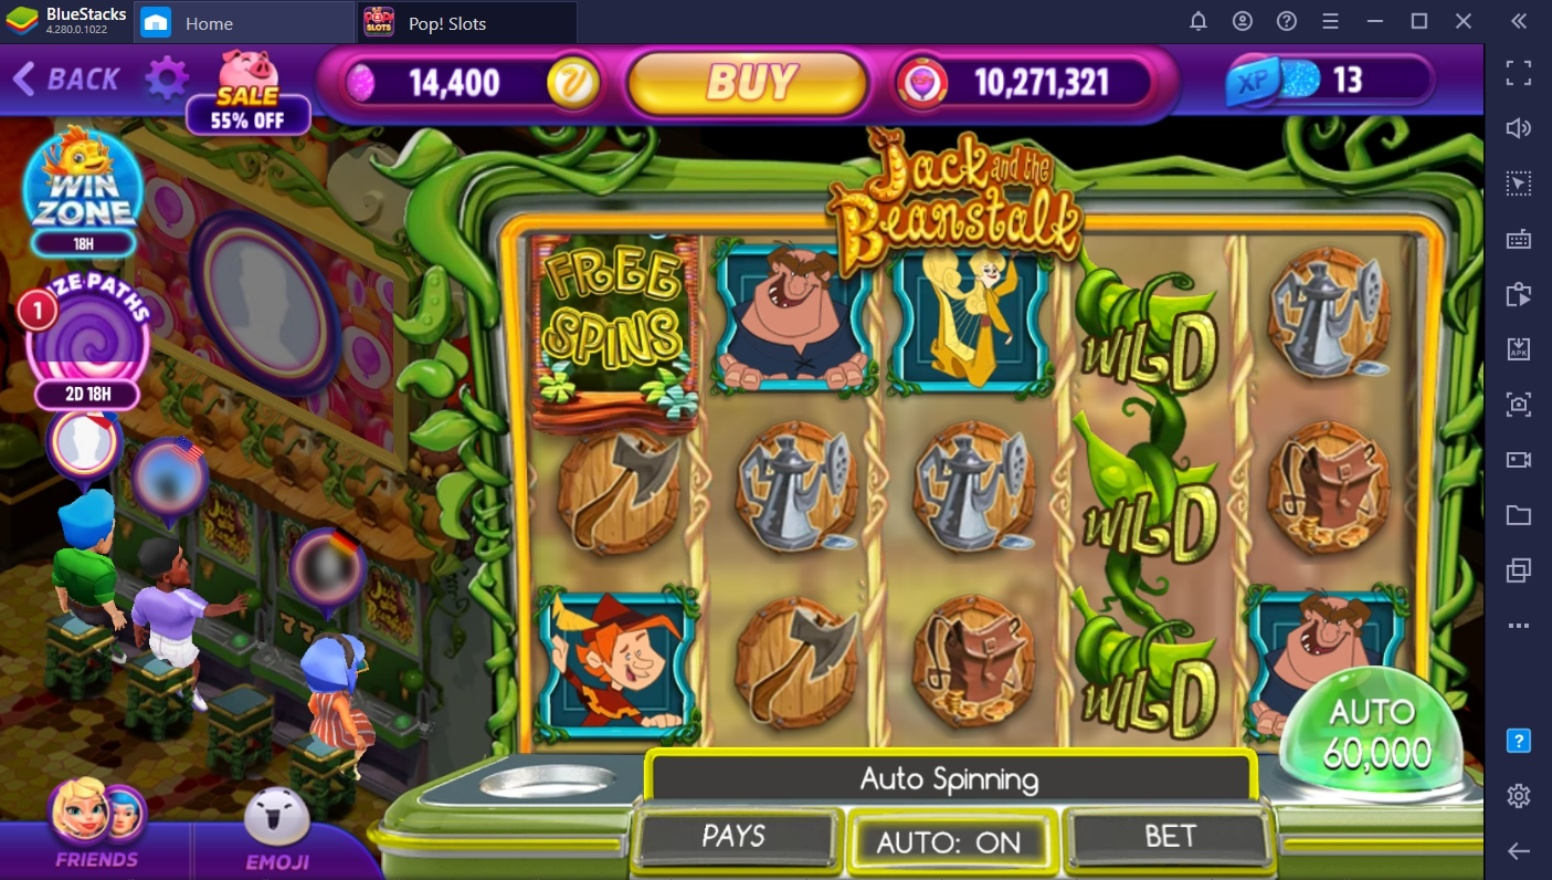 Beginner's Guide to Playing POP! Slots Casino